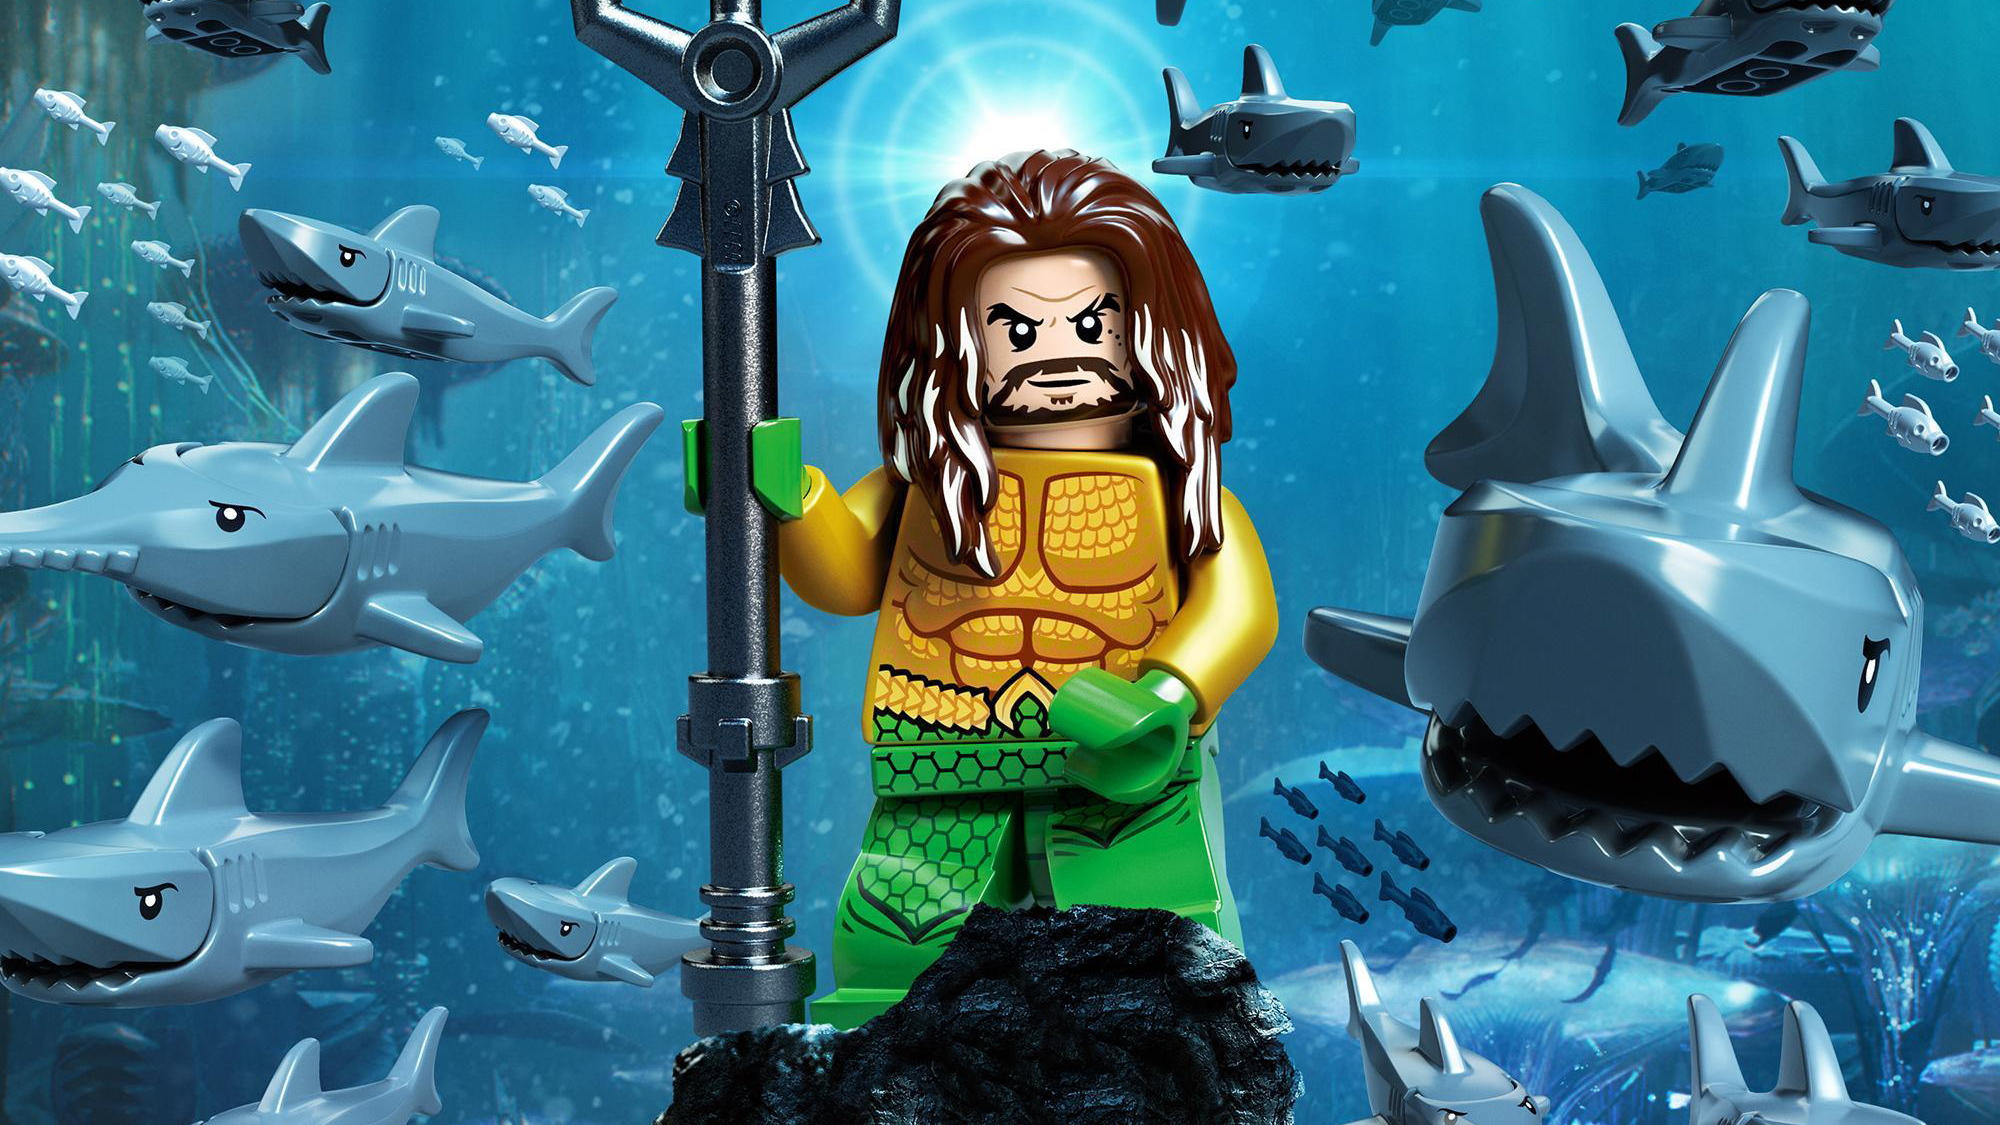 Aquaman Movie Lego Hd Superheroes 4k Wallpapers Images Backgrounds Photos And Pictures